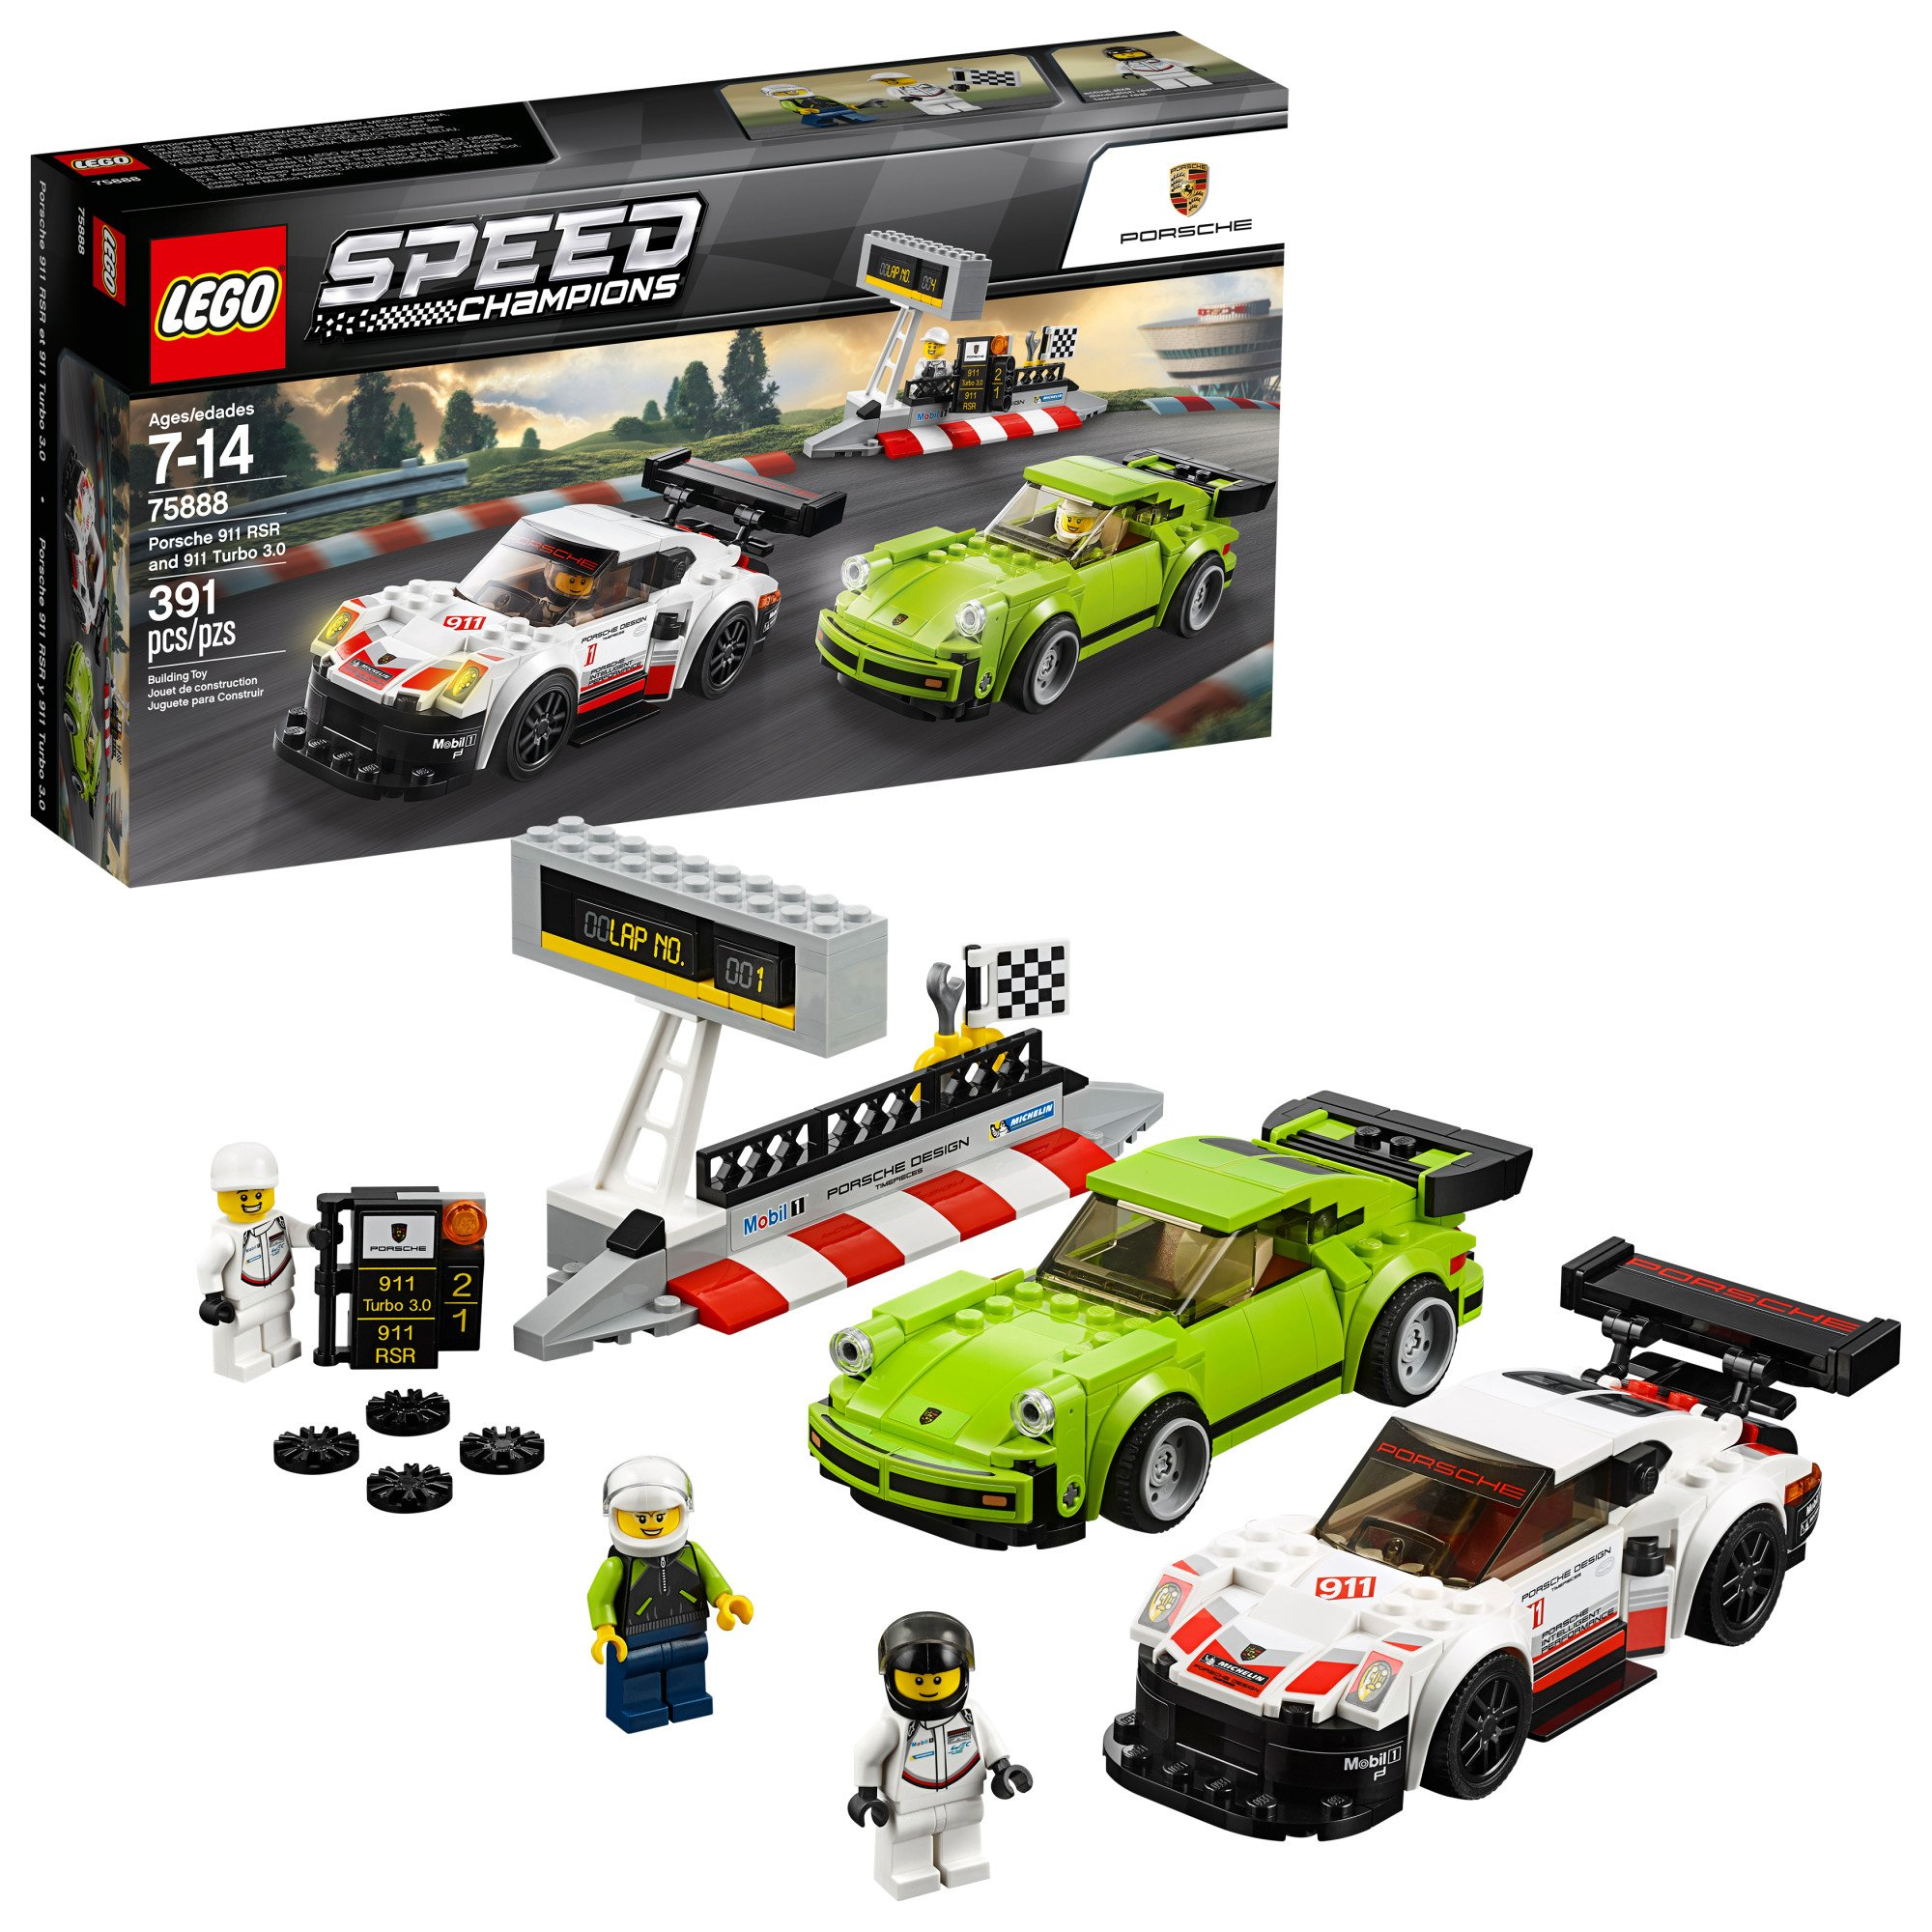 LEGO Speed Champions Porsche 911 RSR and 911 Turbo 3.0 75888 Building Kit (391 Pieces) by LEGO